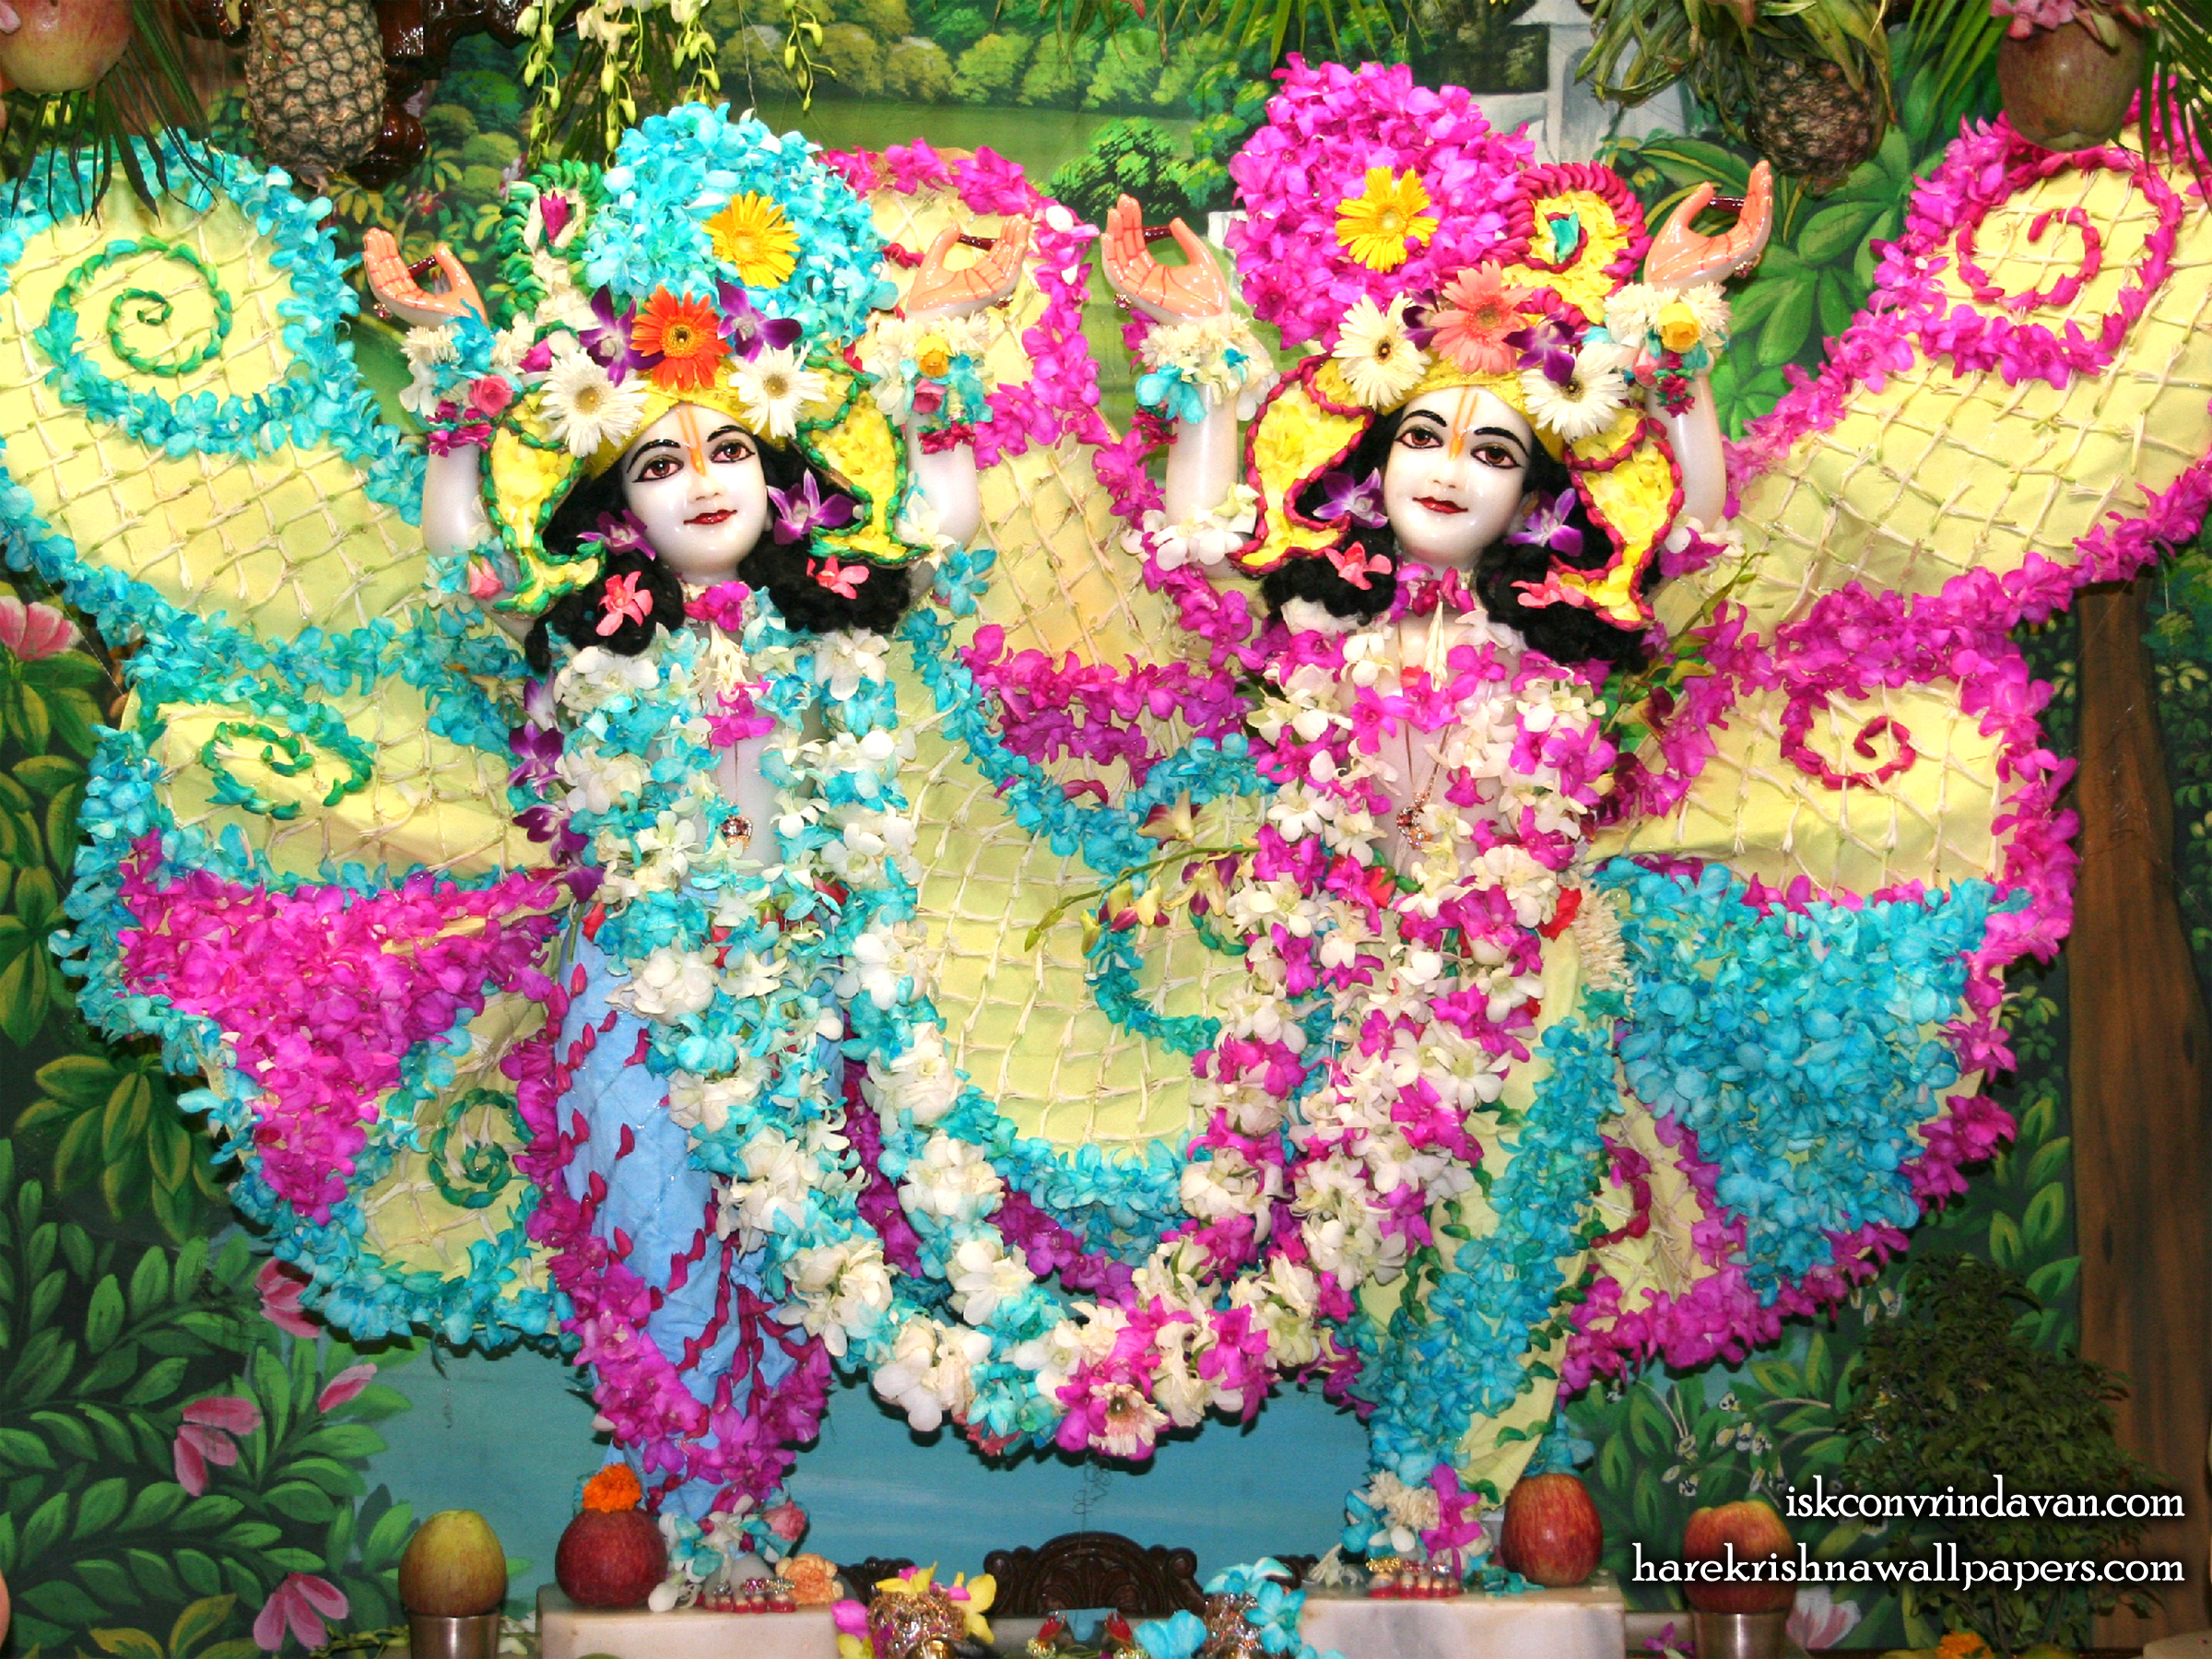 Sri Sri Gaura Nitai Wallpaper (087) Size 2400x1800 Download